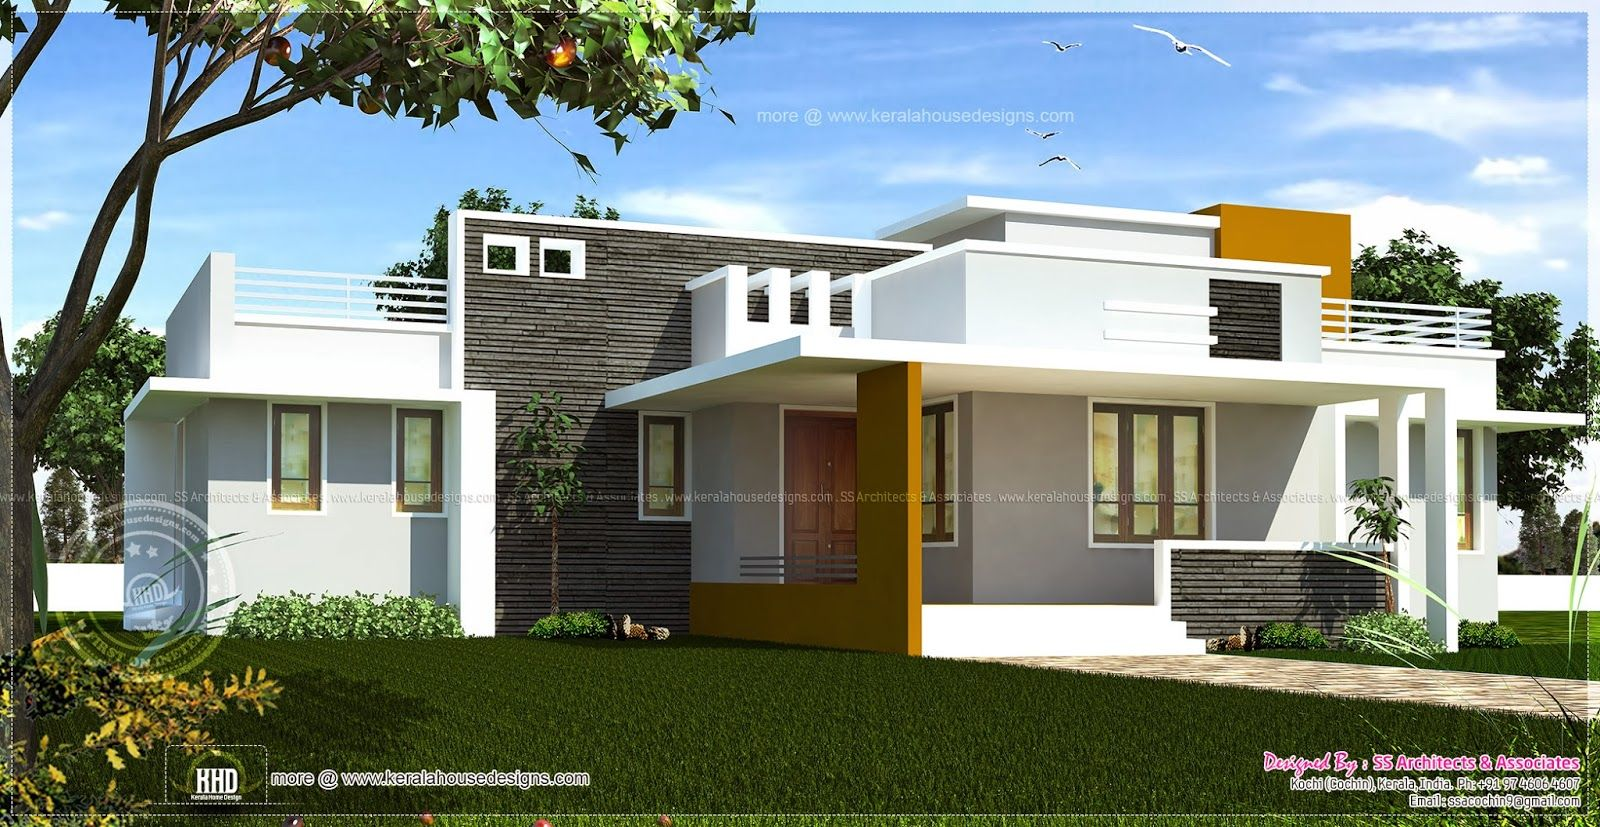 Excellent single home designs single floor contemporary for One floor house exterior design